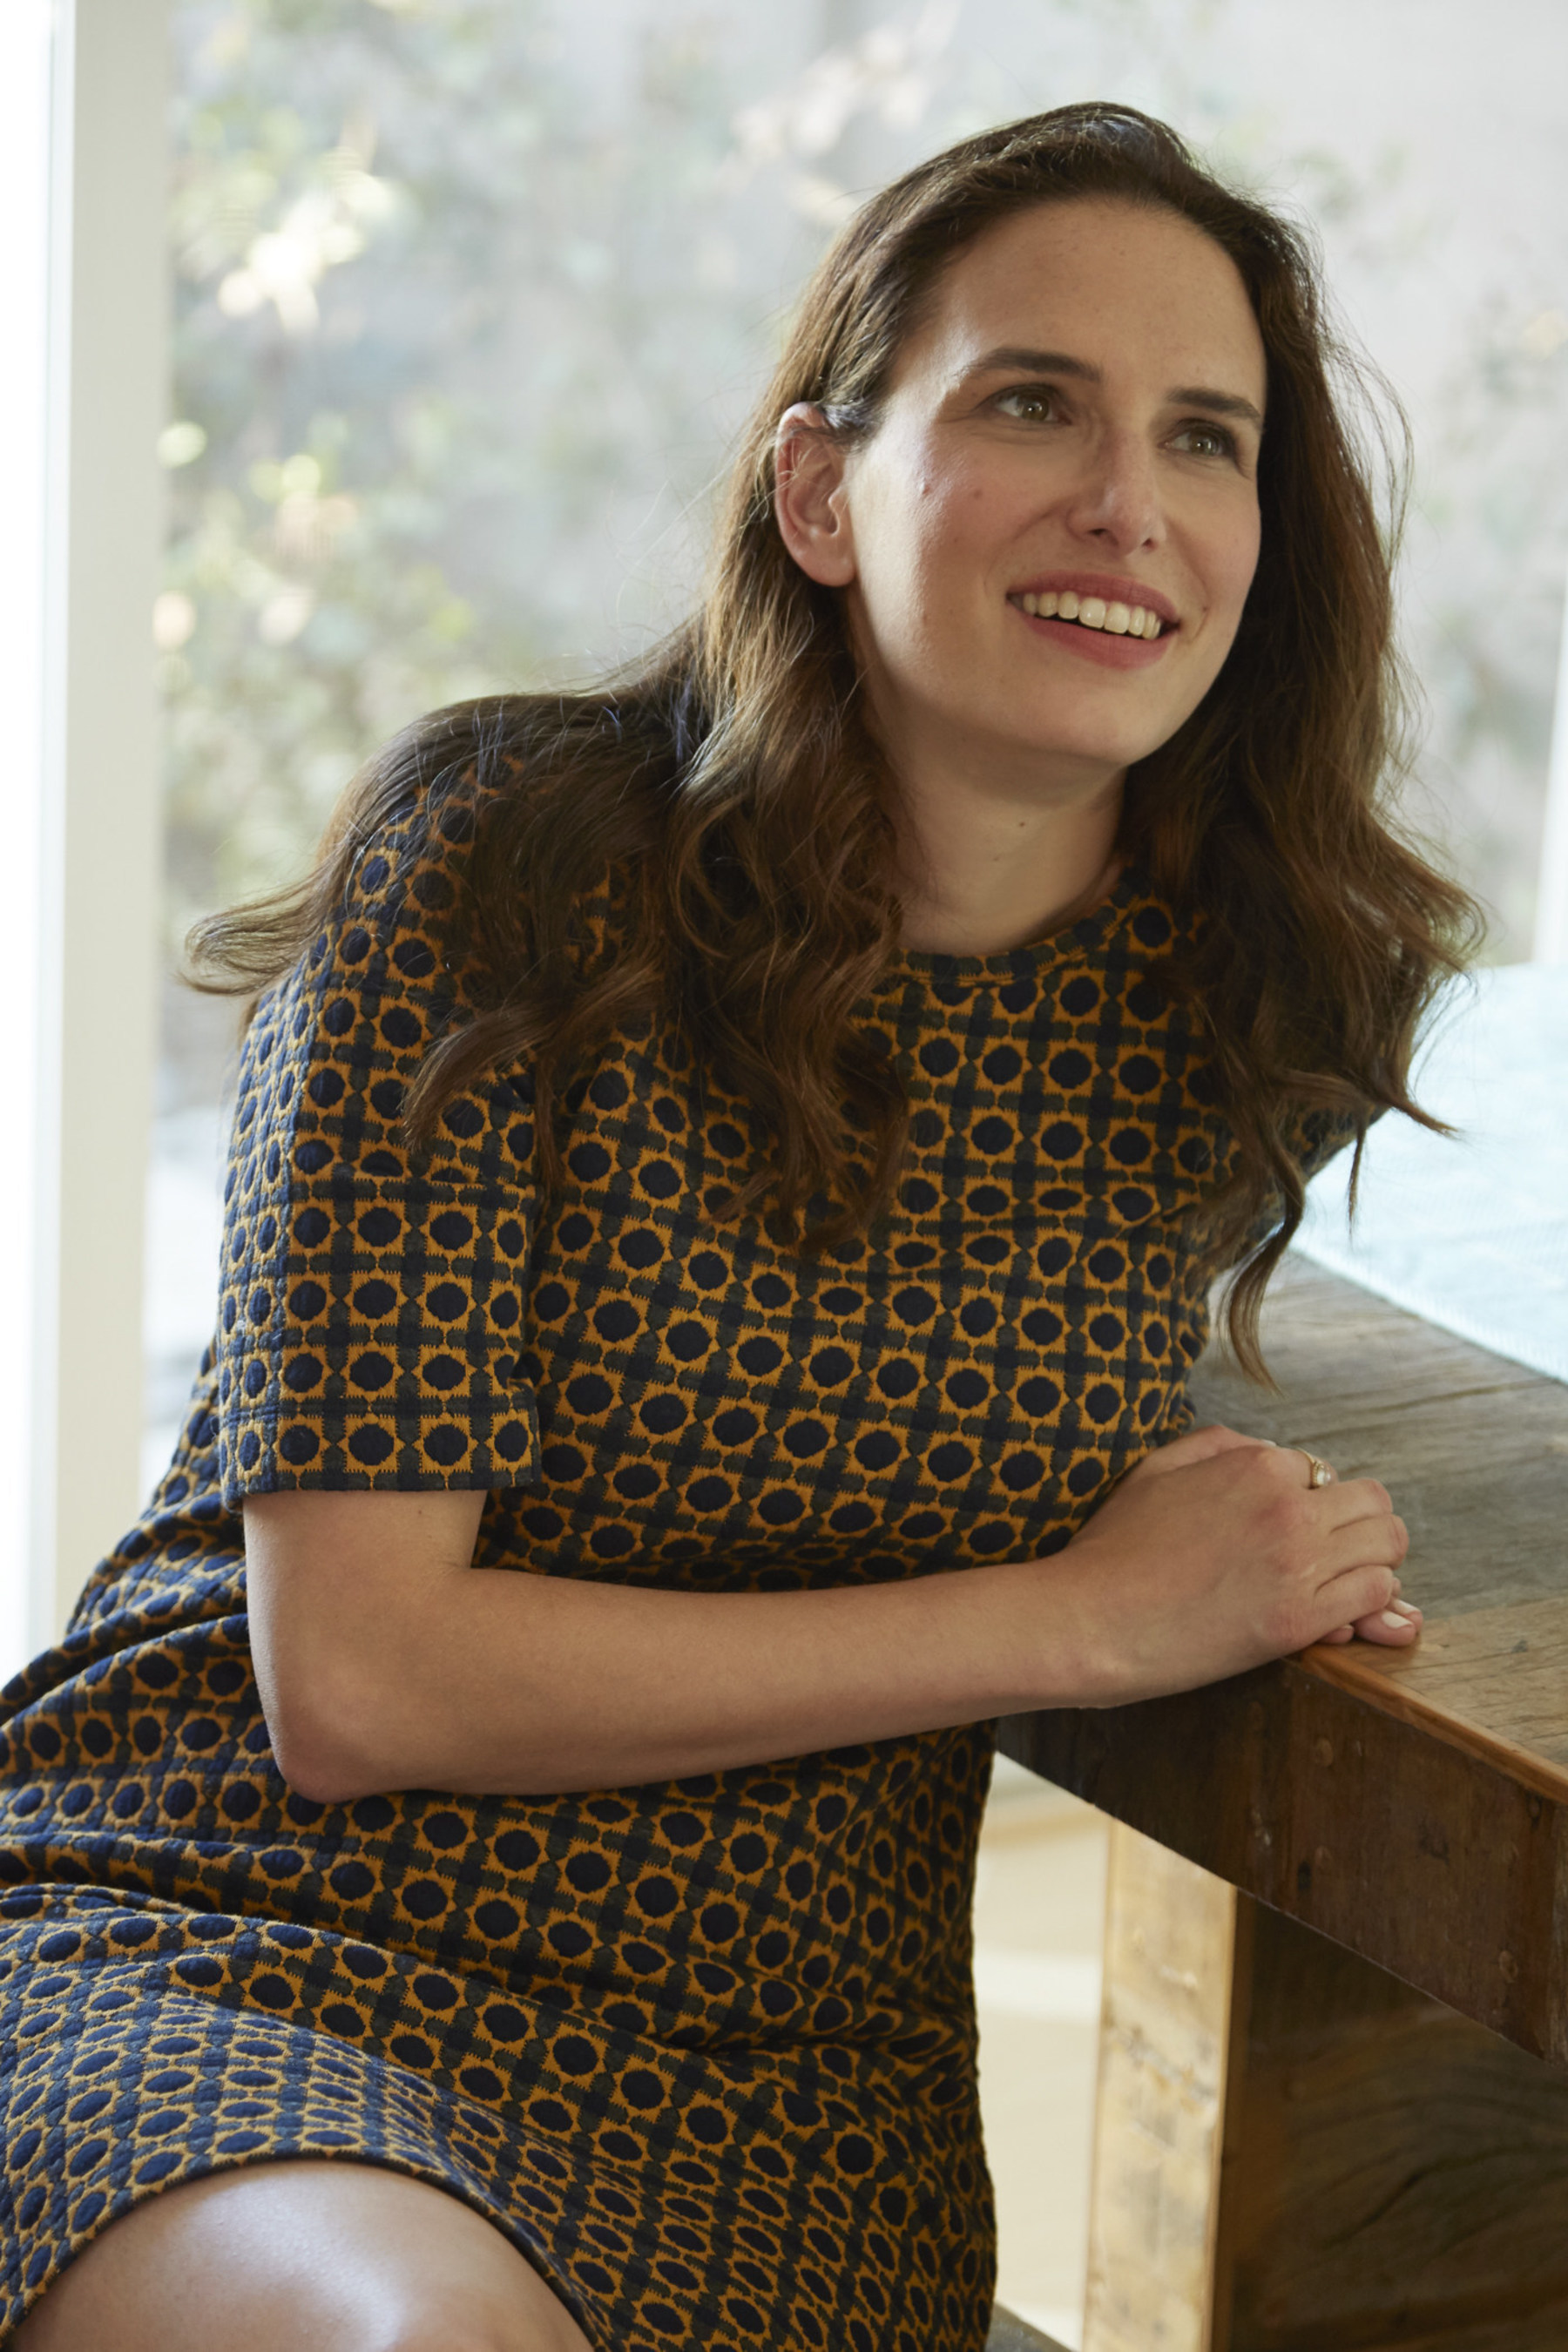 LOFT teams up with writer Jessi Klein for comedy shorts